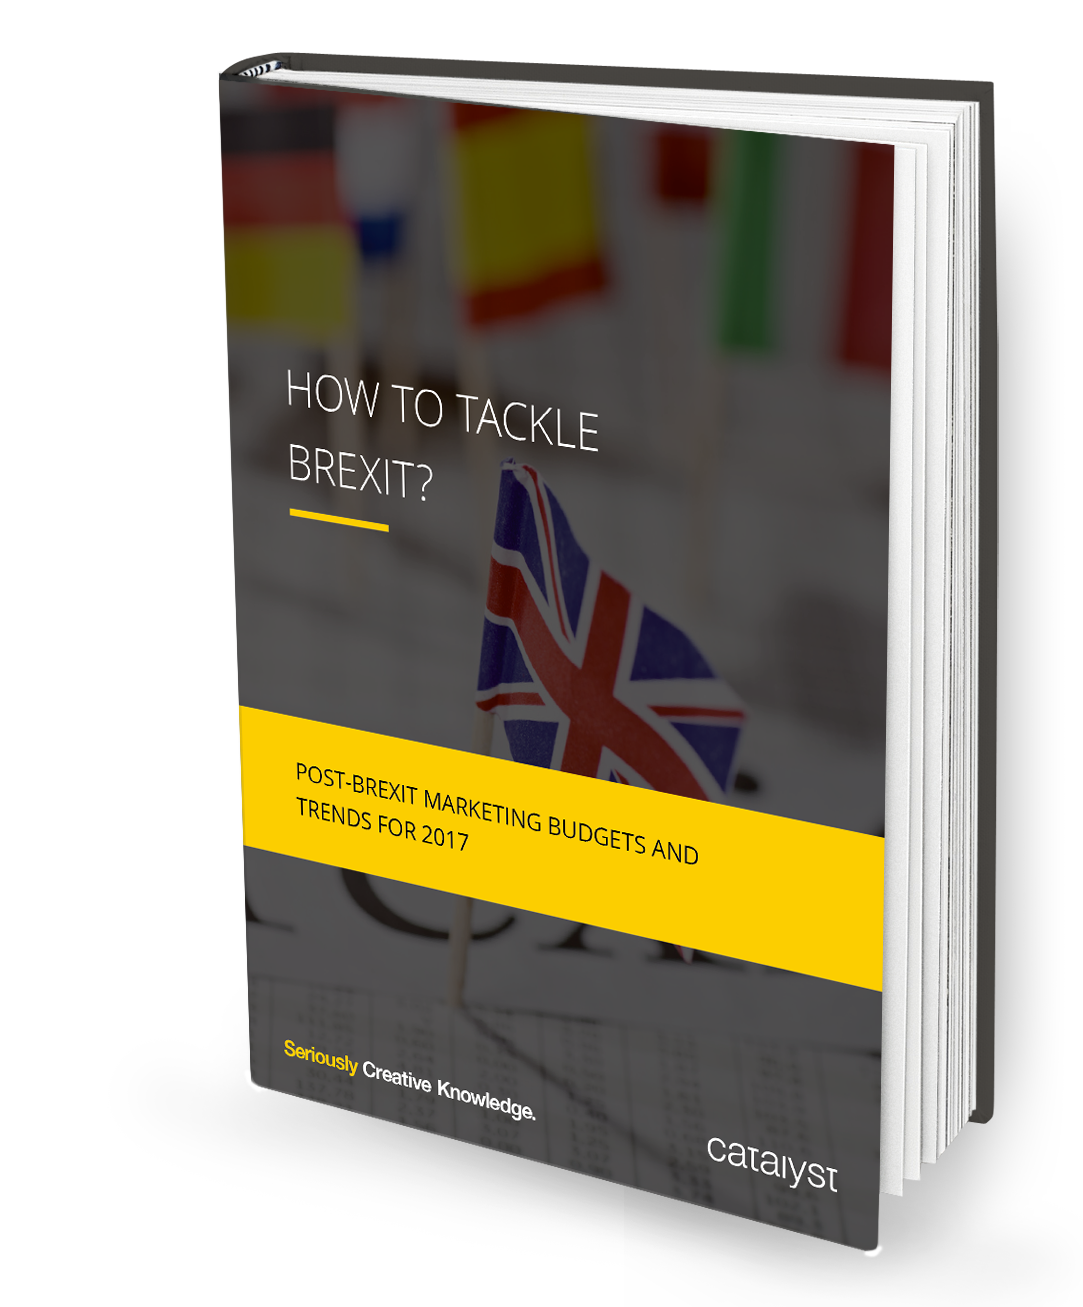 How to Tackle Brexit-whitepaper-mockup.png